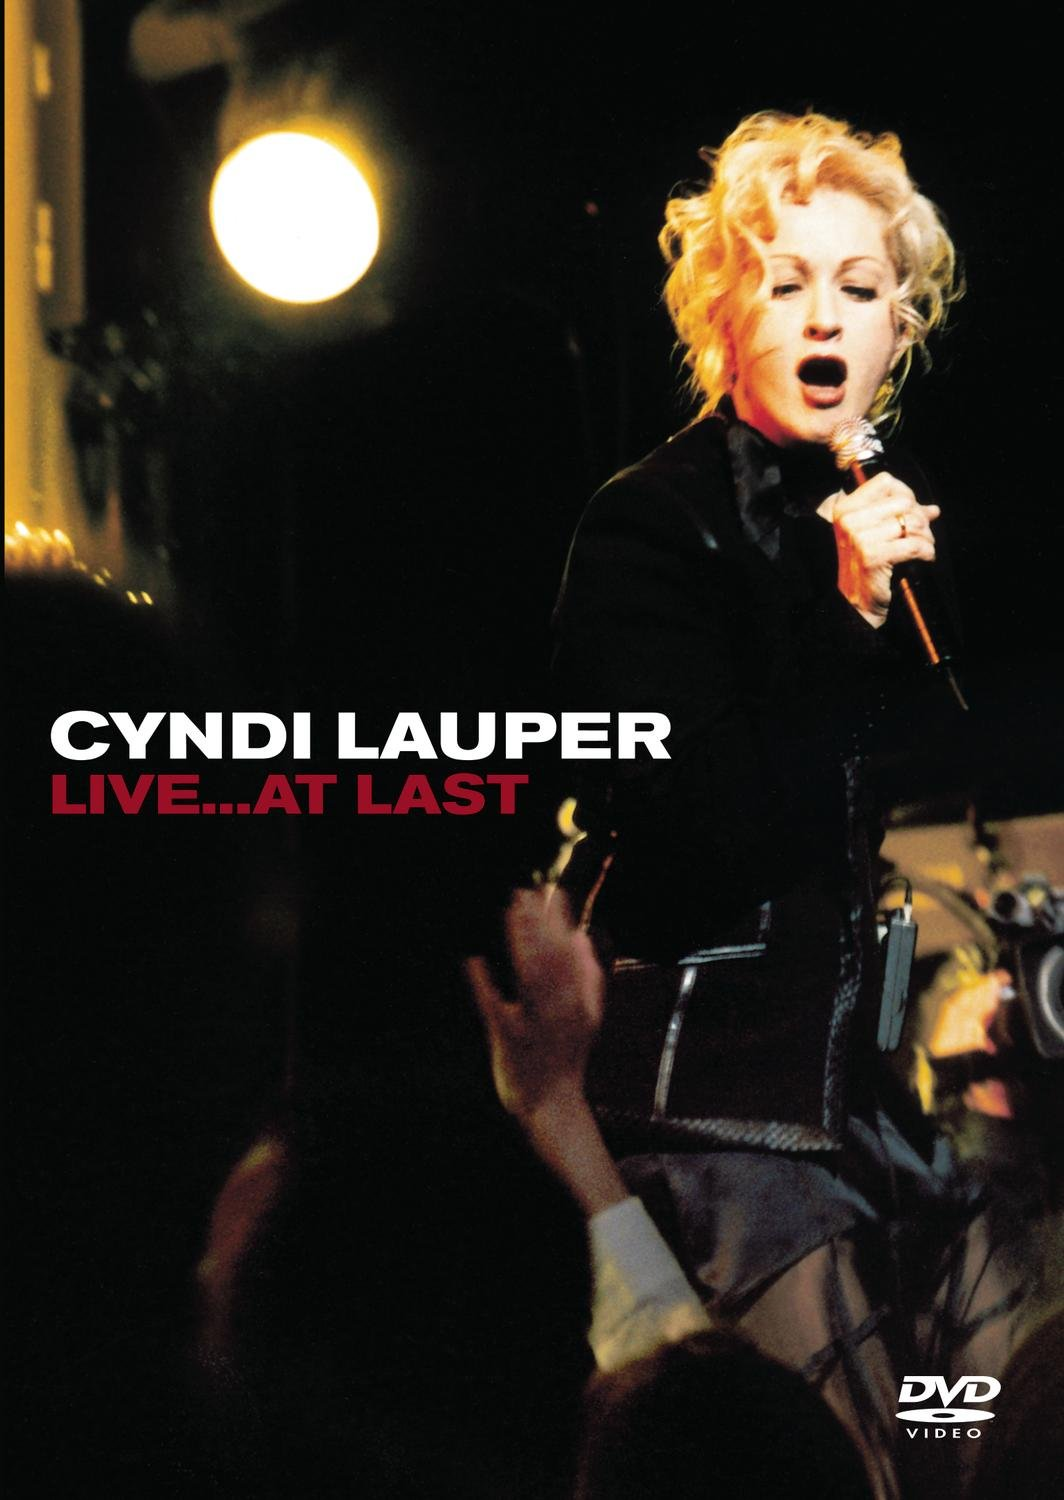 Cyndi Lauper - Live... At Last (DVD in Jewel Case Packaging)